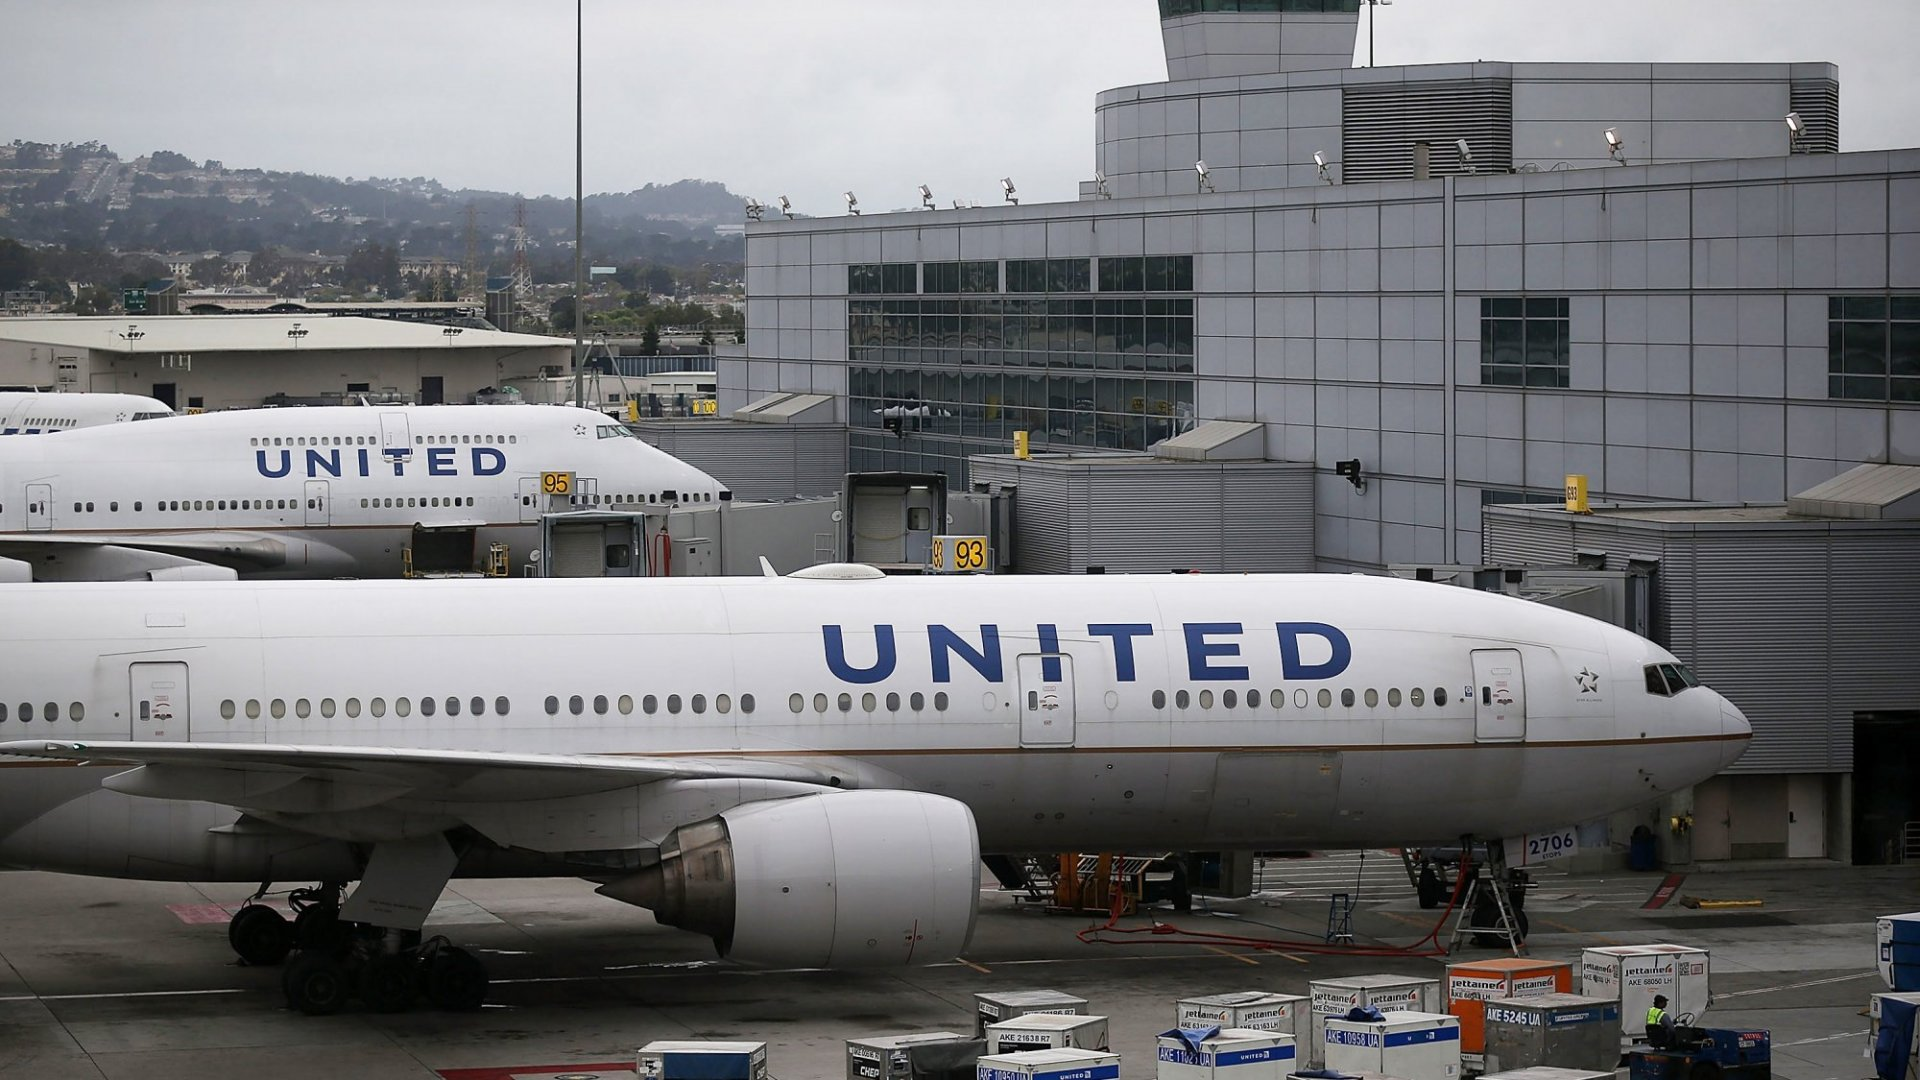 United Airlines Flight Attendants Just Revealed an Extraordinary Plan That Would Really Inconvenience People. (Let's Hope They Don't Have to Do It)